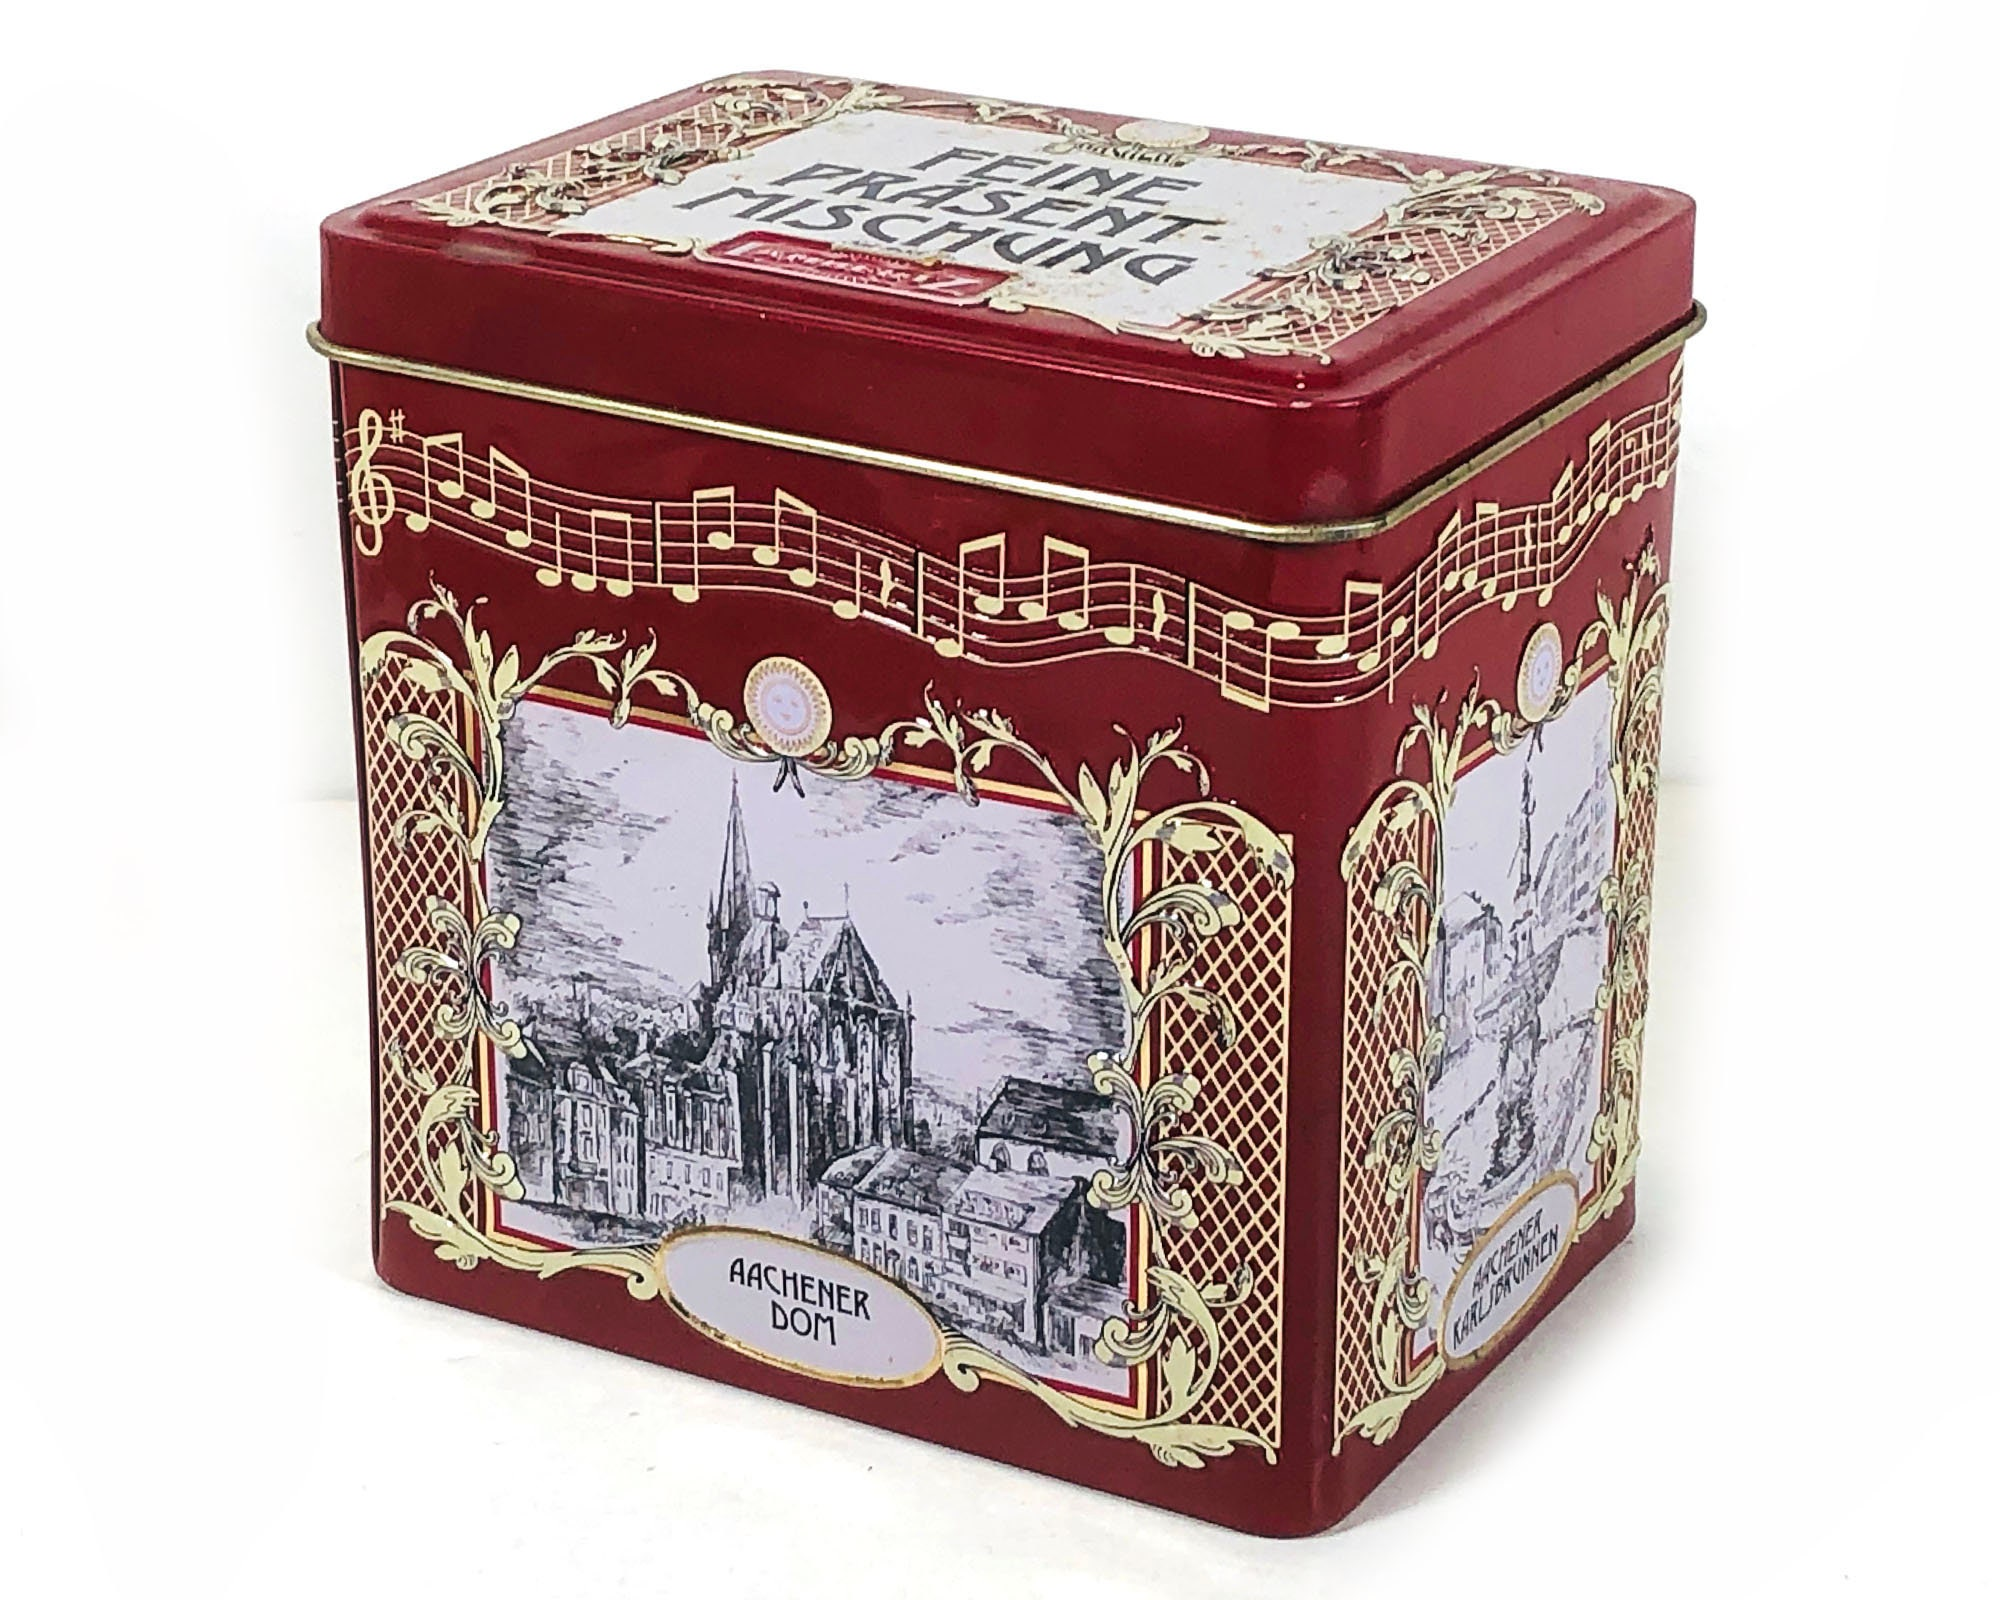 Tannenbaum Aachen.Vintage German Cookie Tin Music Box Oh Christmas Tree Lebkuchen Tin Perfect For Holiday Gift Giving